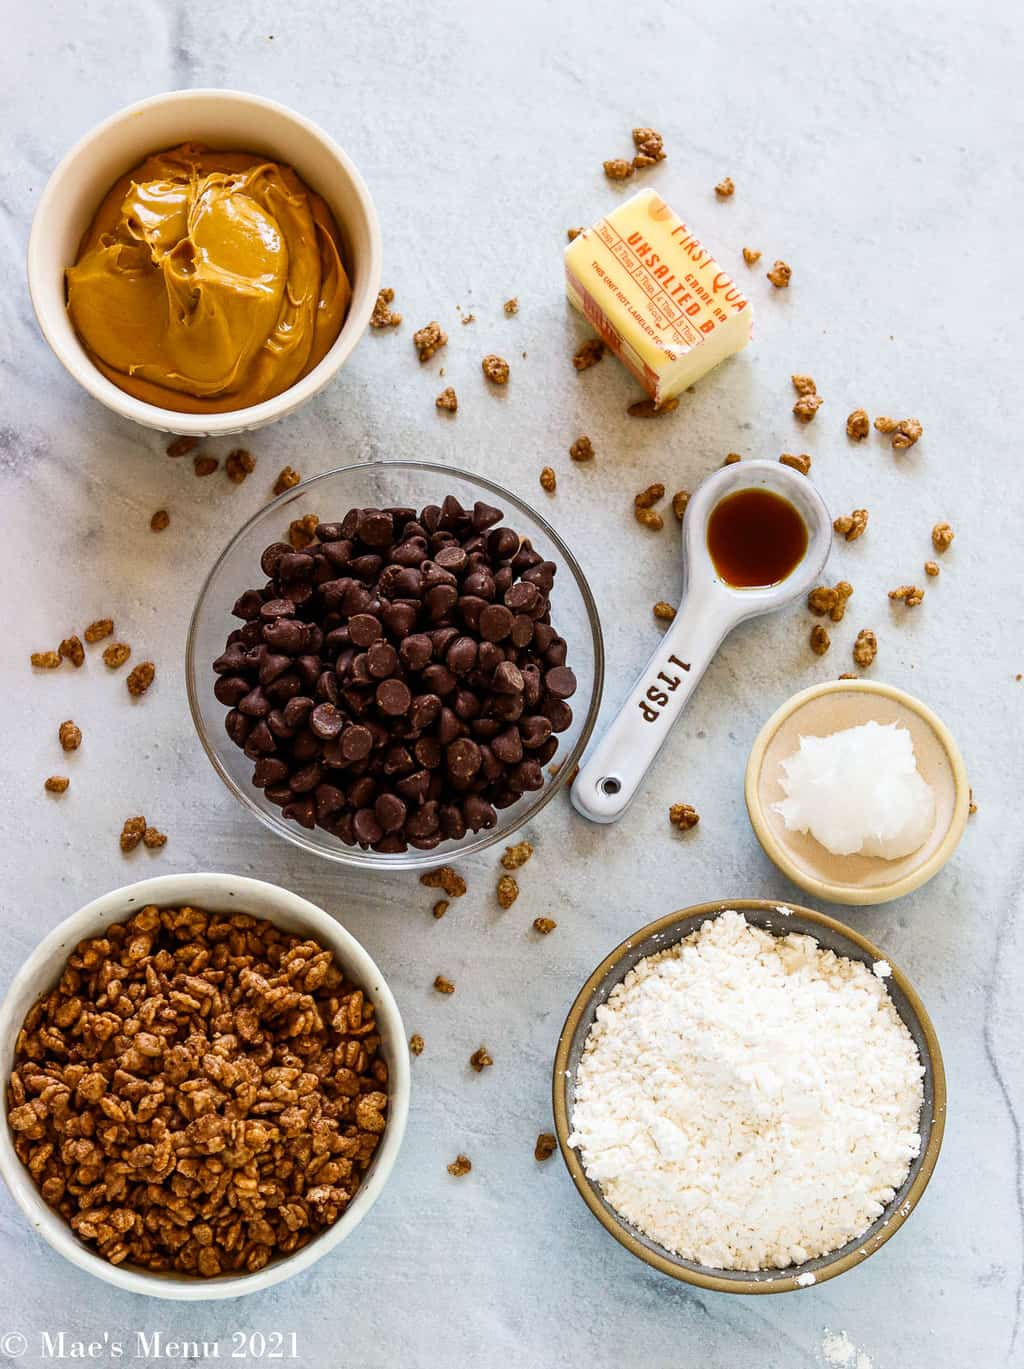 All the ingredients for peanut butter bon bons: peanut butter, chocolate chips, powdered sugar, coconut oil, vanilla, butter, cocoa krispies